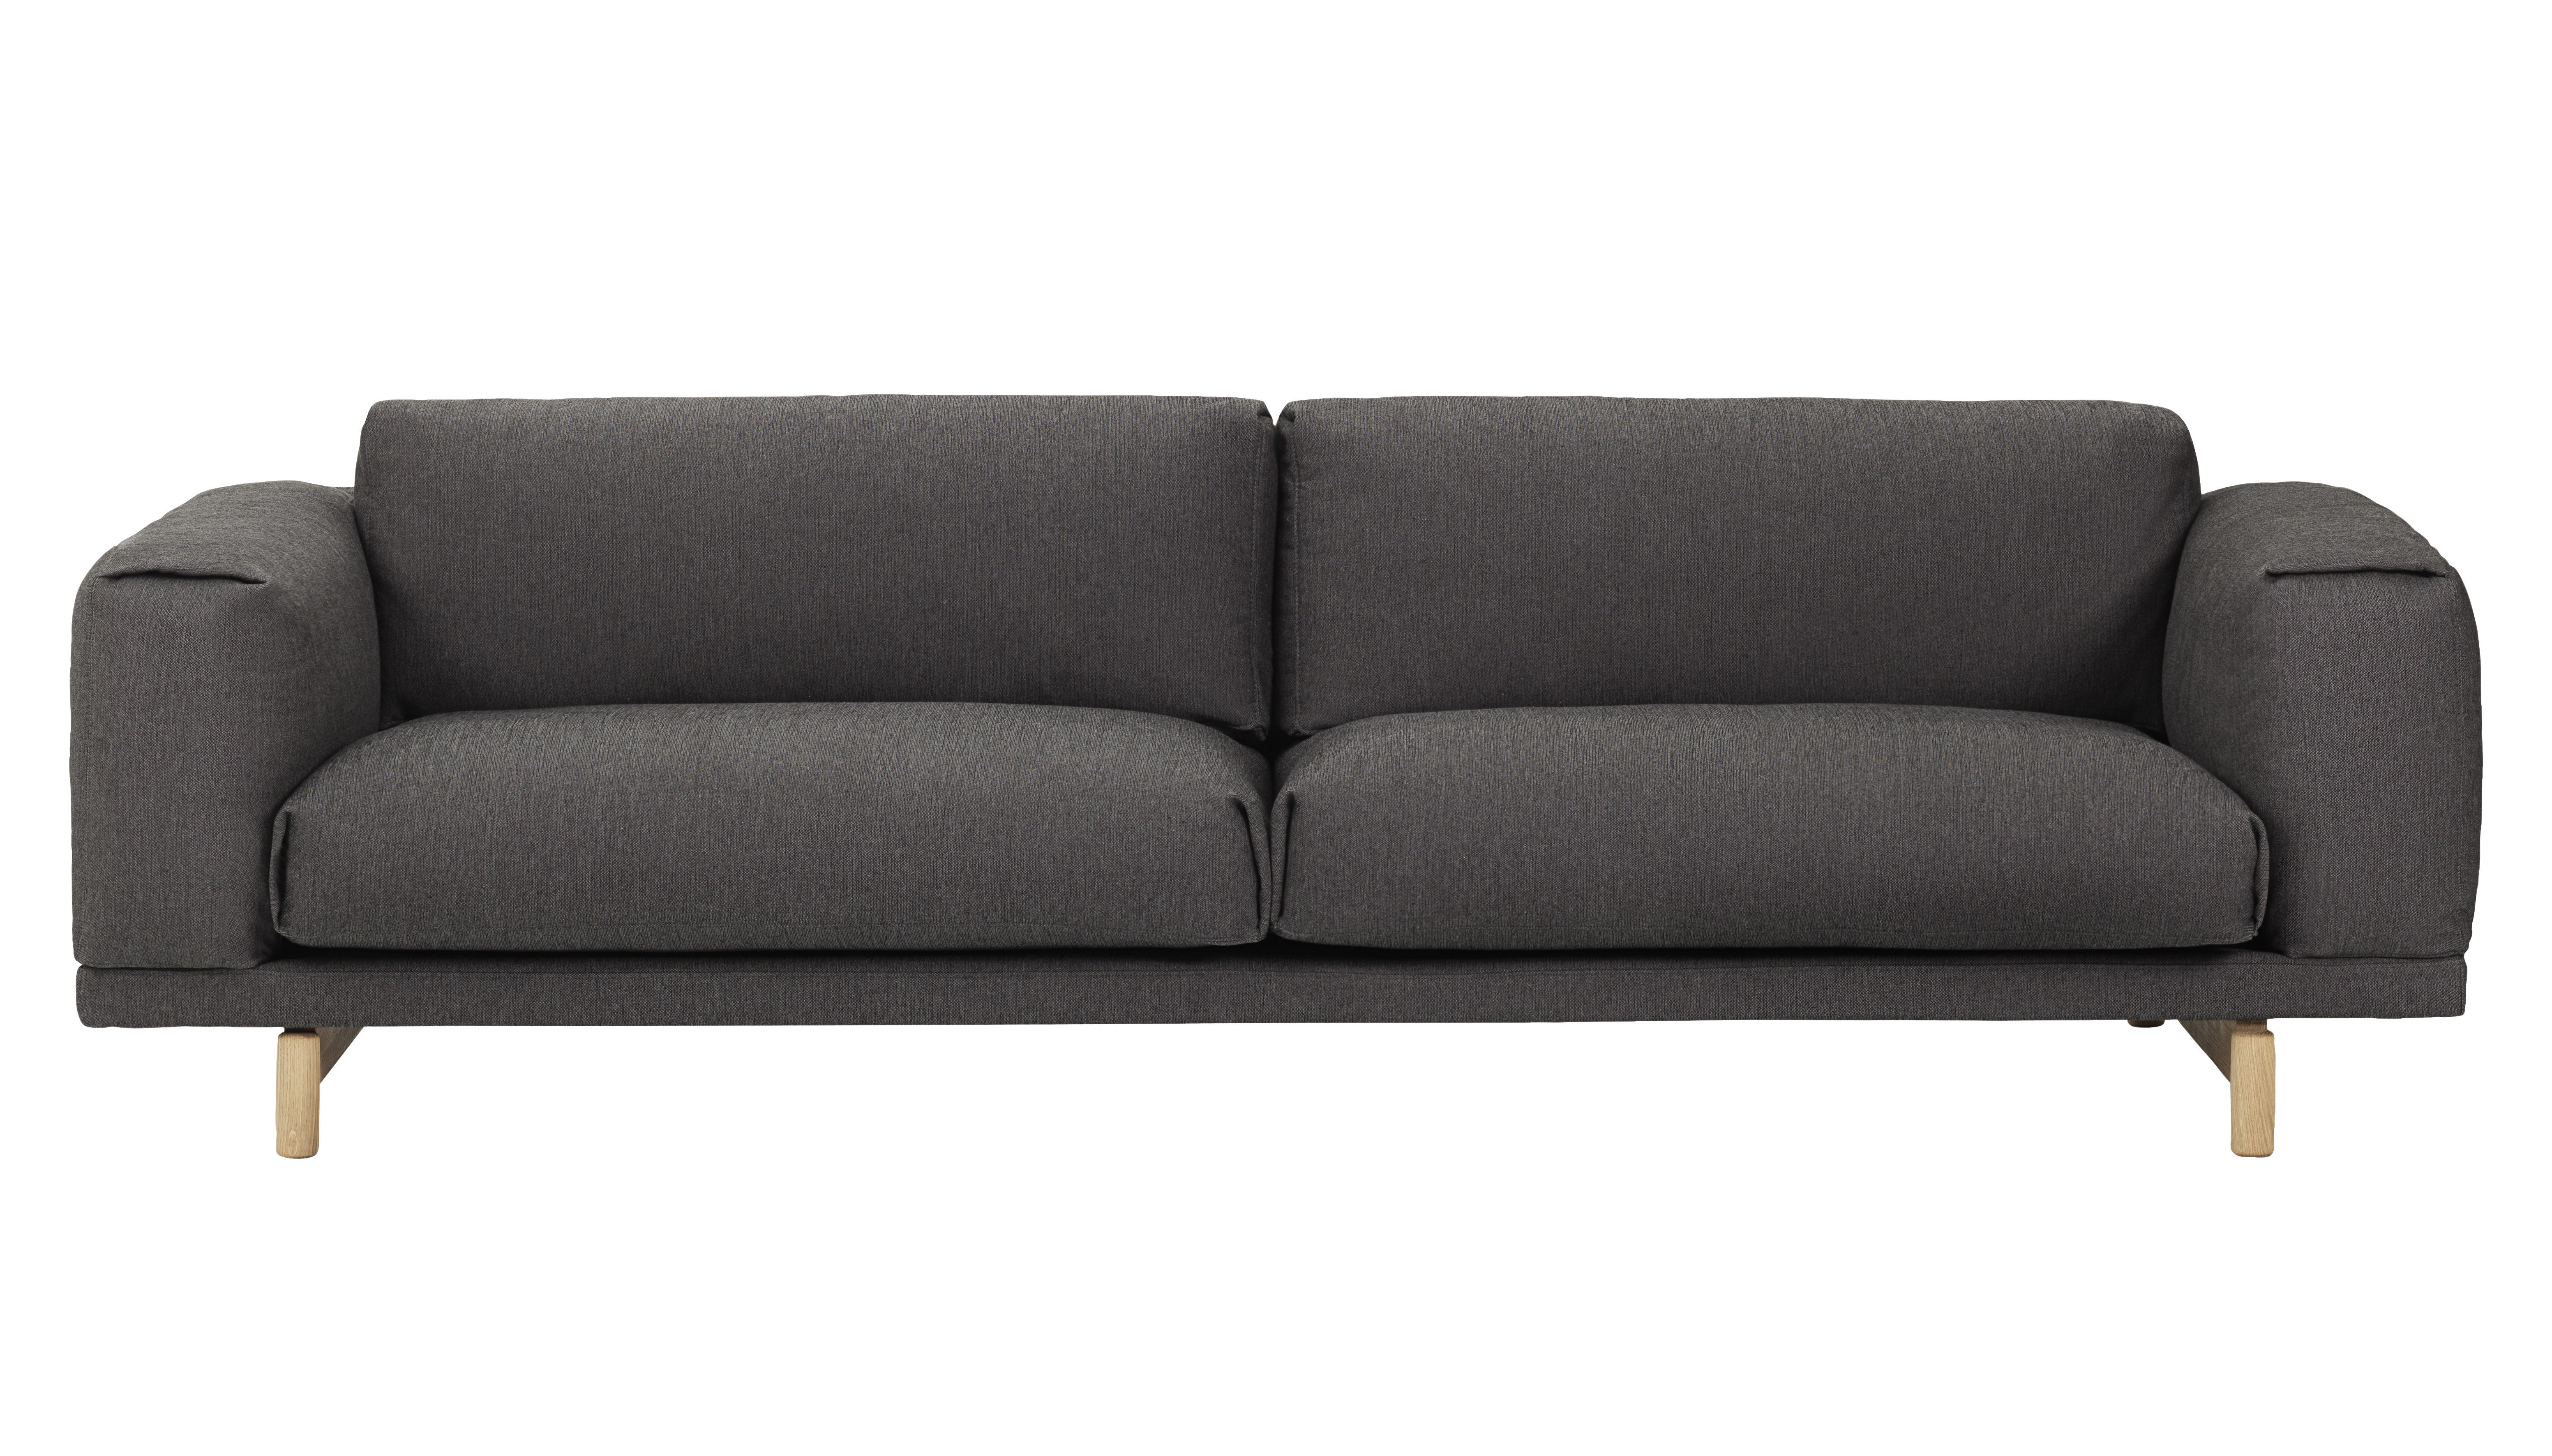 rest 3 sitzer mit baumwoll bezug muuto sofa. Black Bedroom Furniture Sets. Home Design Ideas